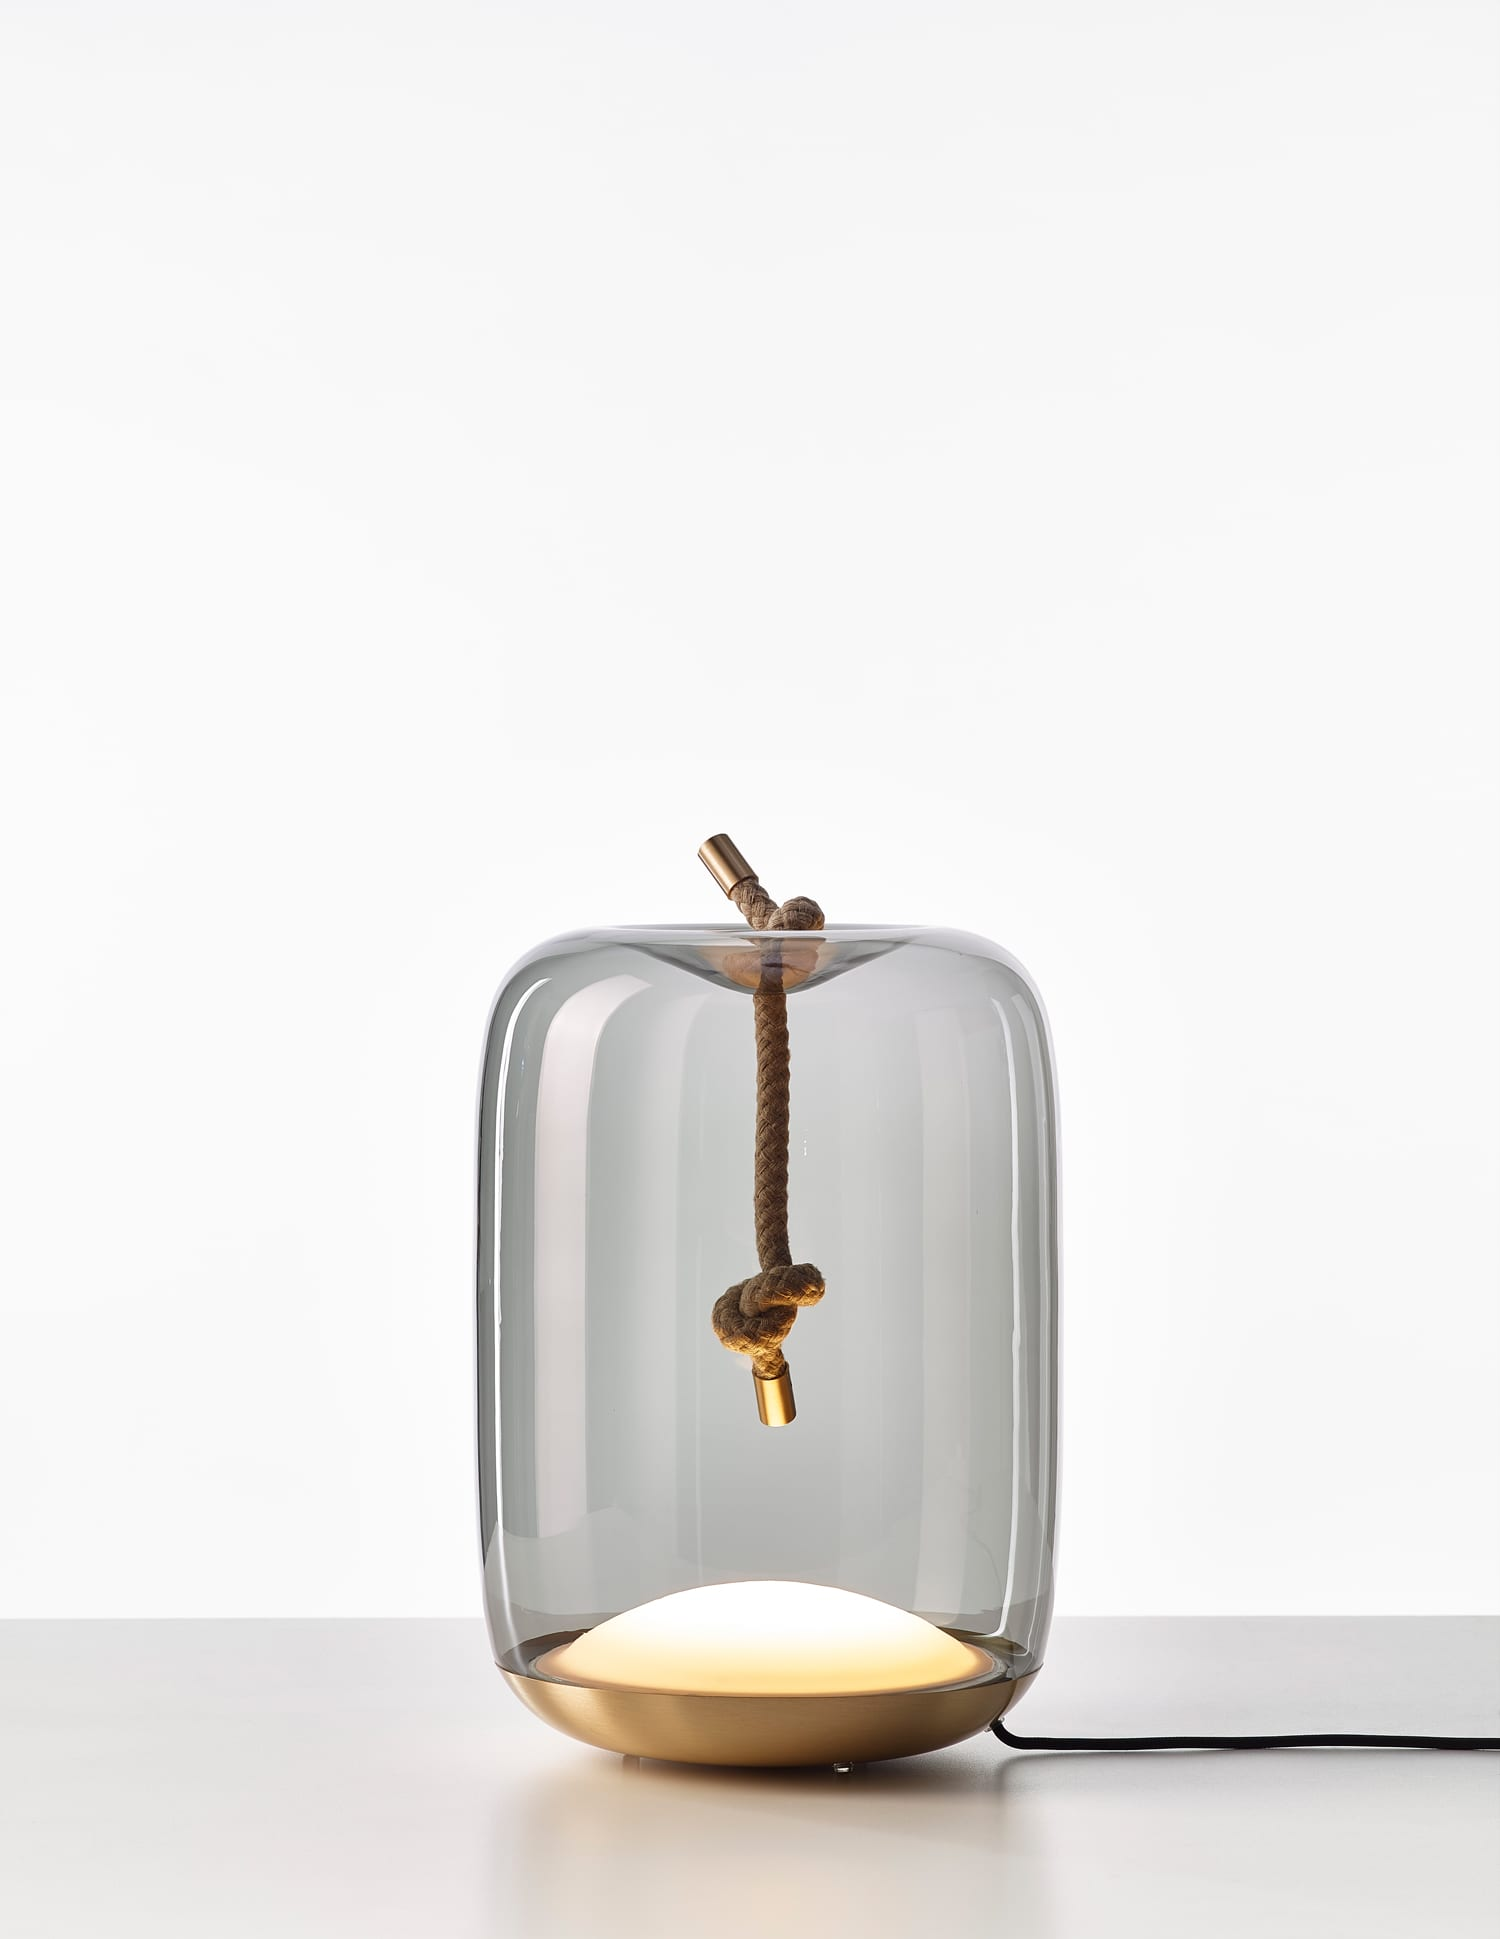 Knot table light by Brokis at Maison & Objet 2019 | Yellowtrace